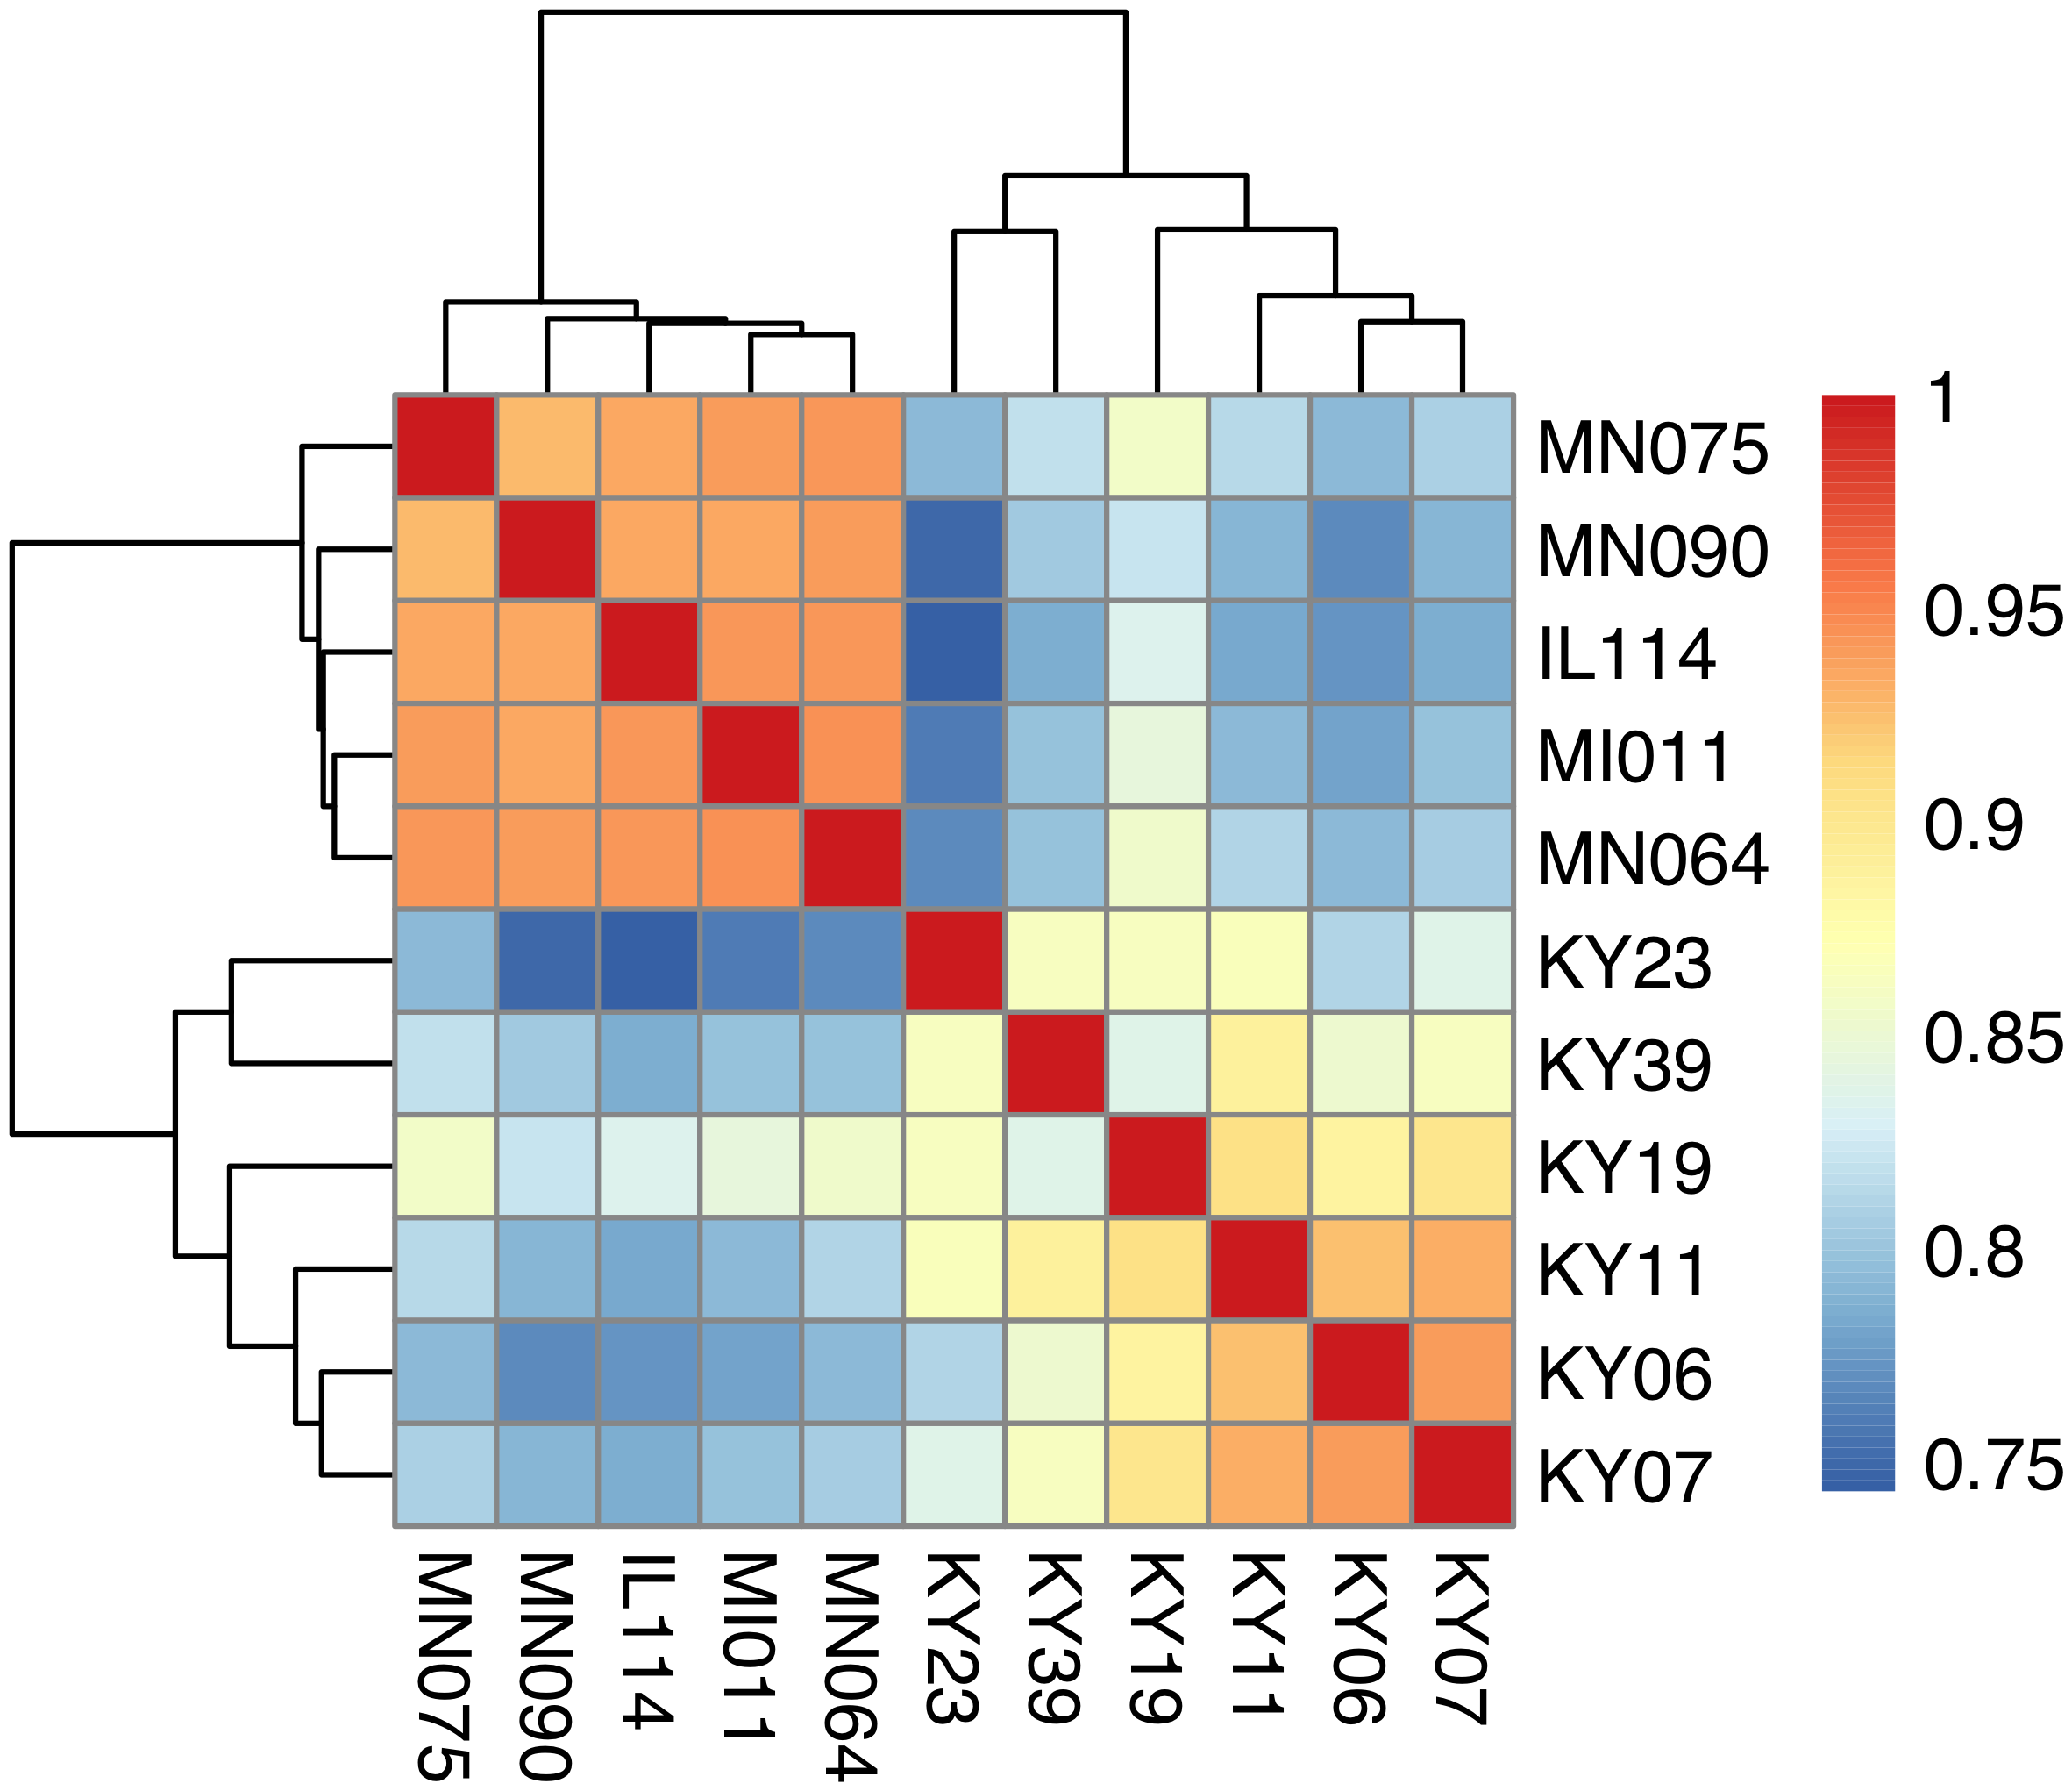 Hierarchical clustering of gene expression in WNS-affected and unaffected bats.